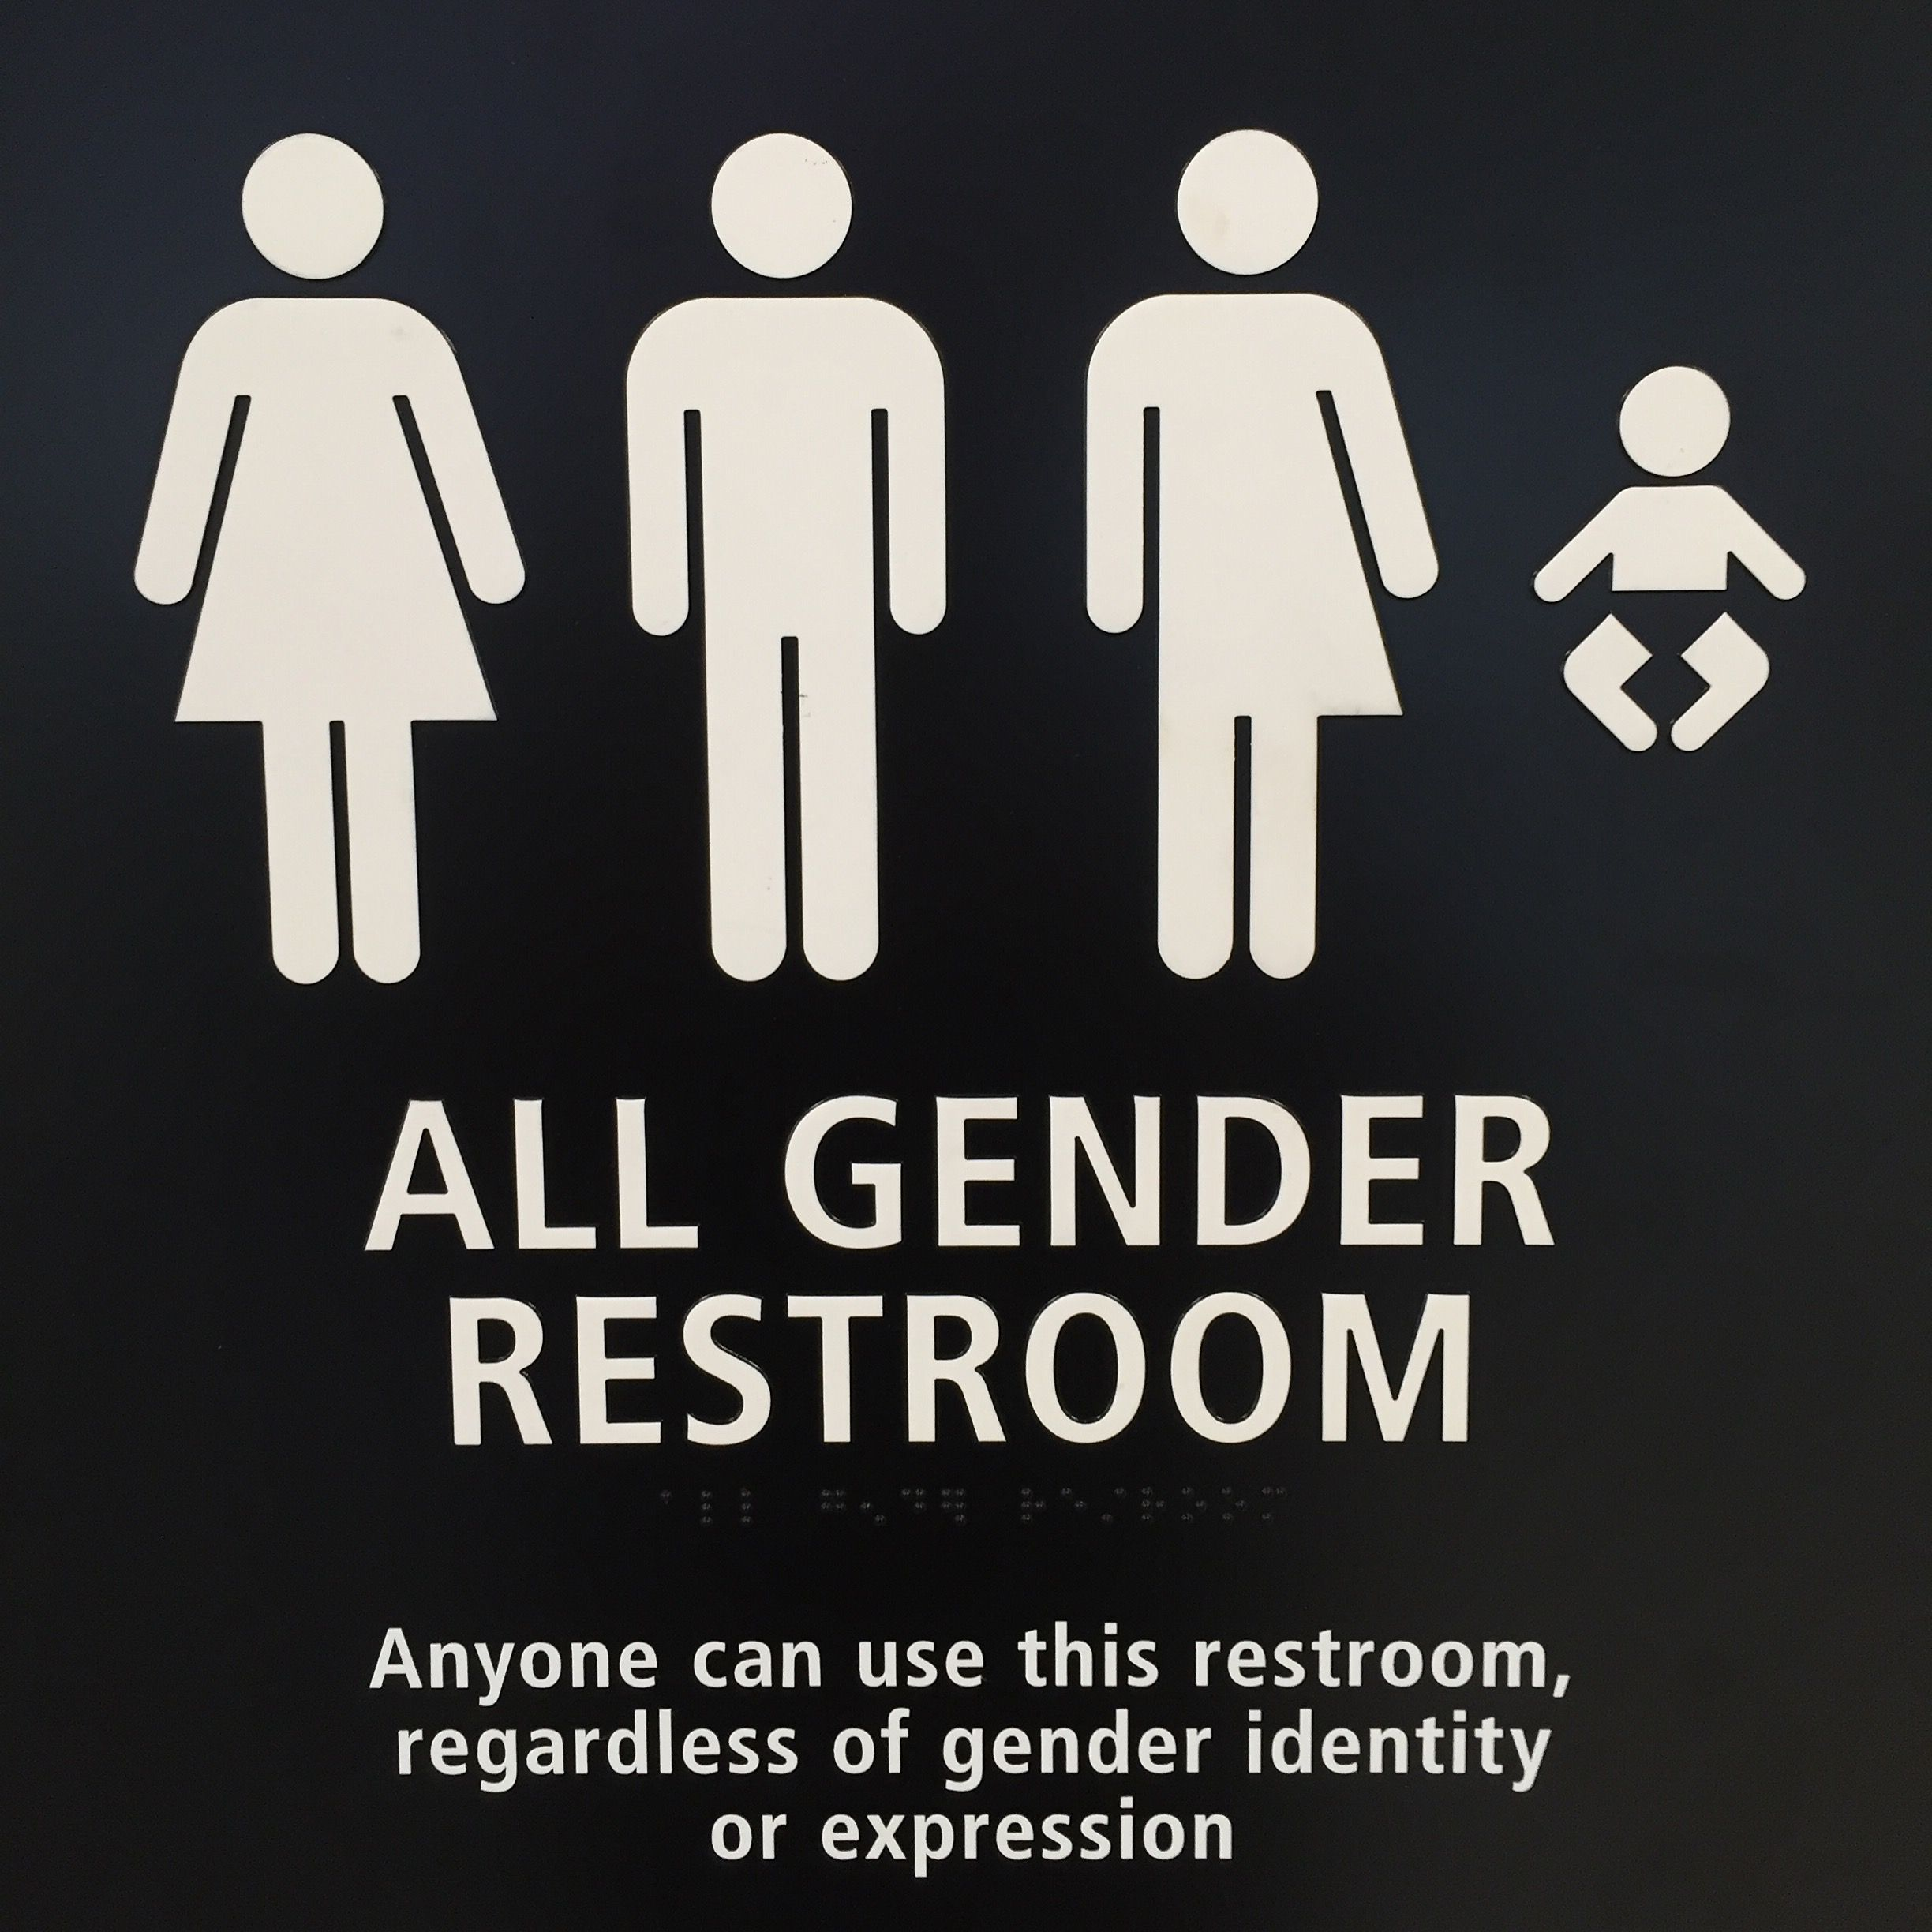 Astonishing Pin By Steve Snider On Direct Bathroom Signs All Gender Download Free Architecture Designs Xaembritishbridgeorg